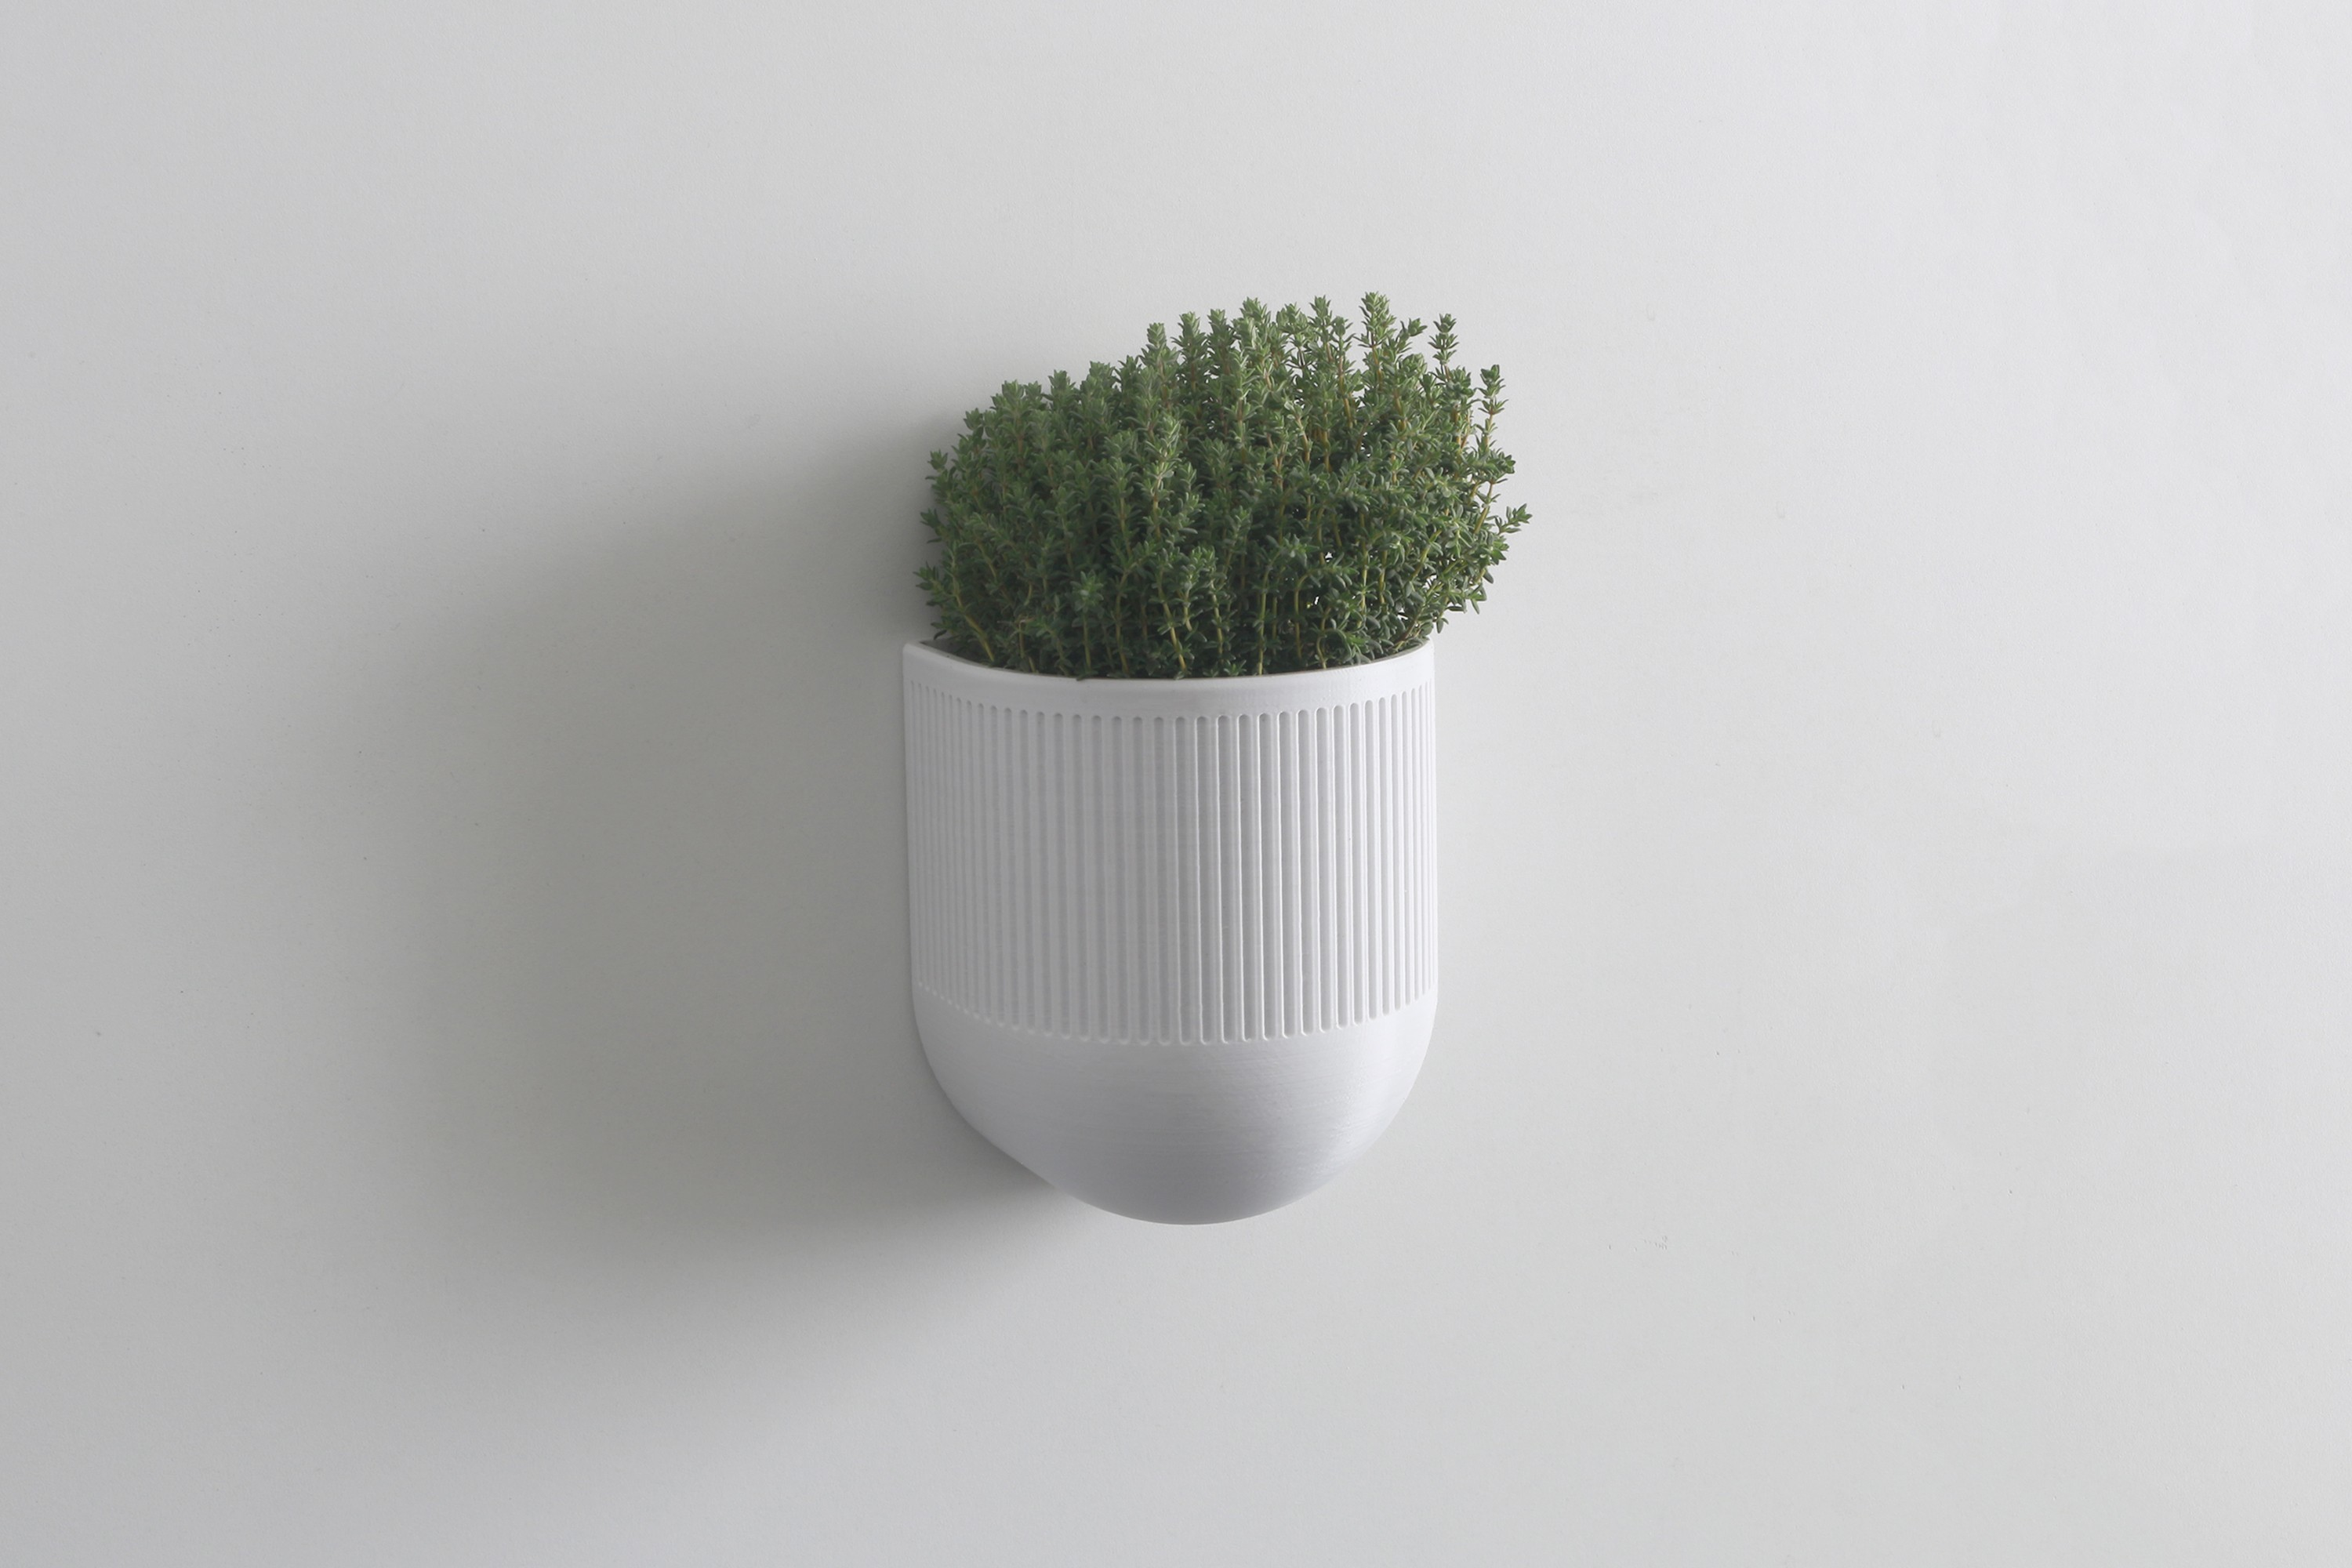 wall_planter_4.jpg Download free STL file 3D printed smart planter • 3D printing model, filamentsdirectory